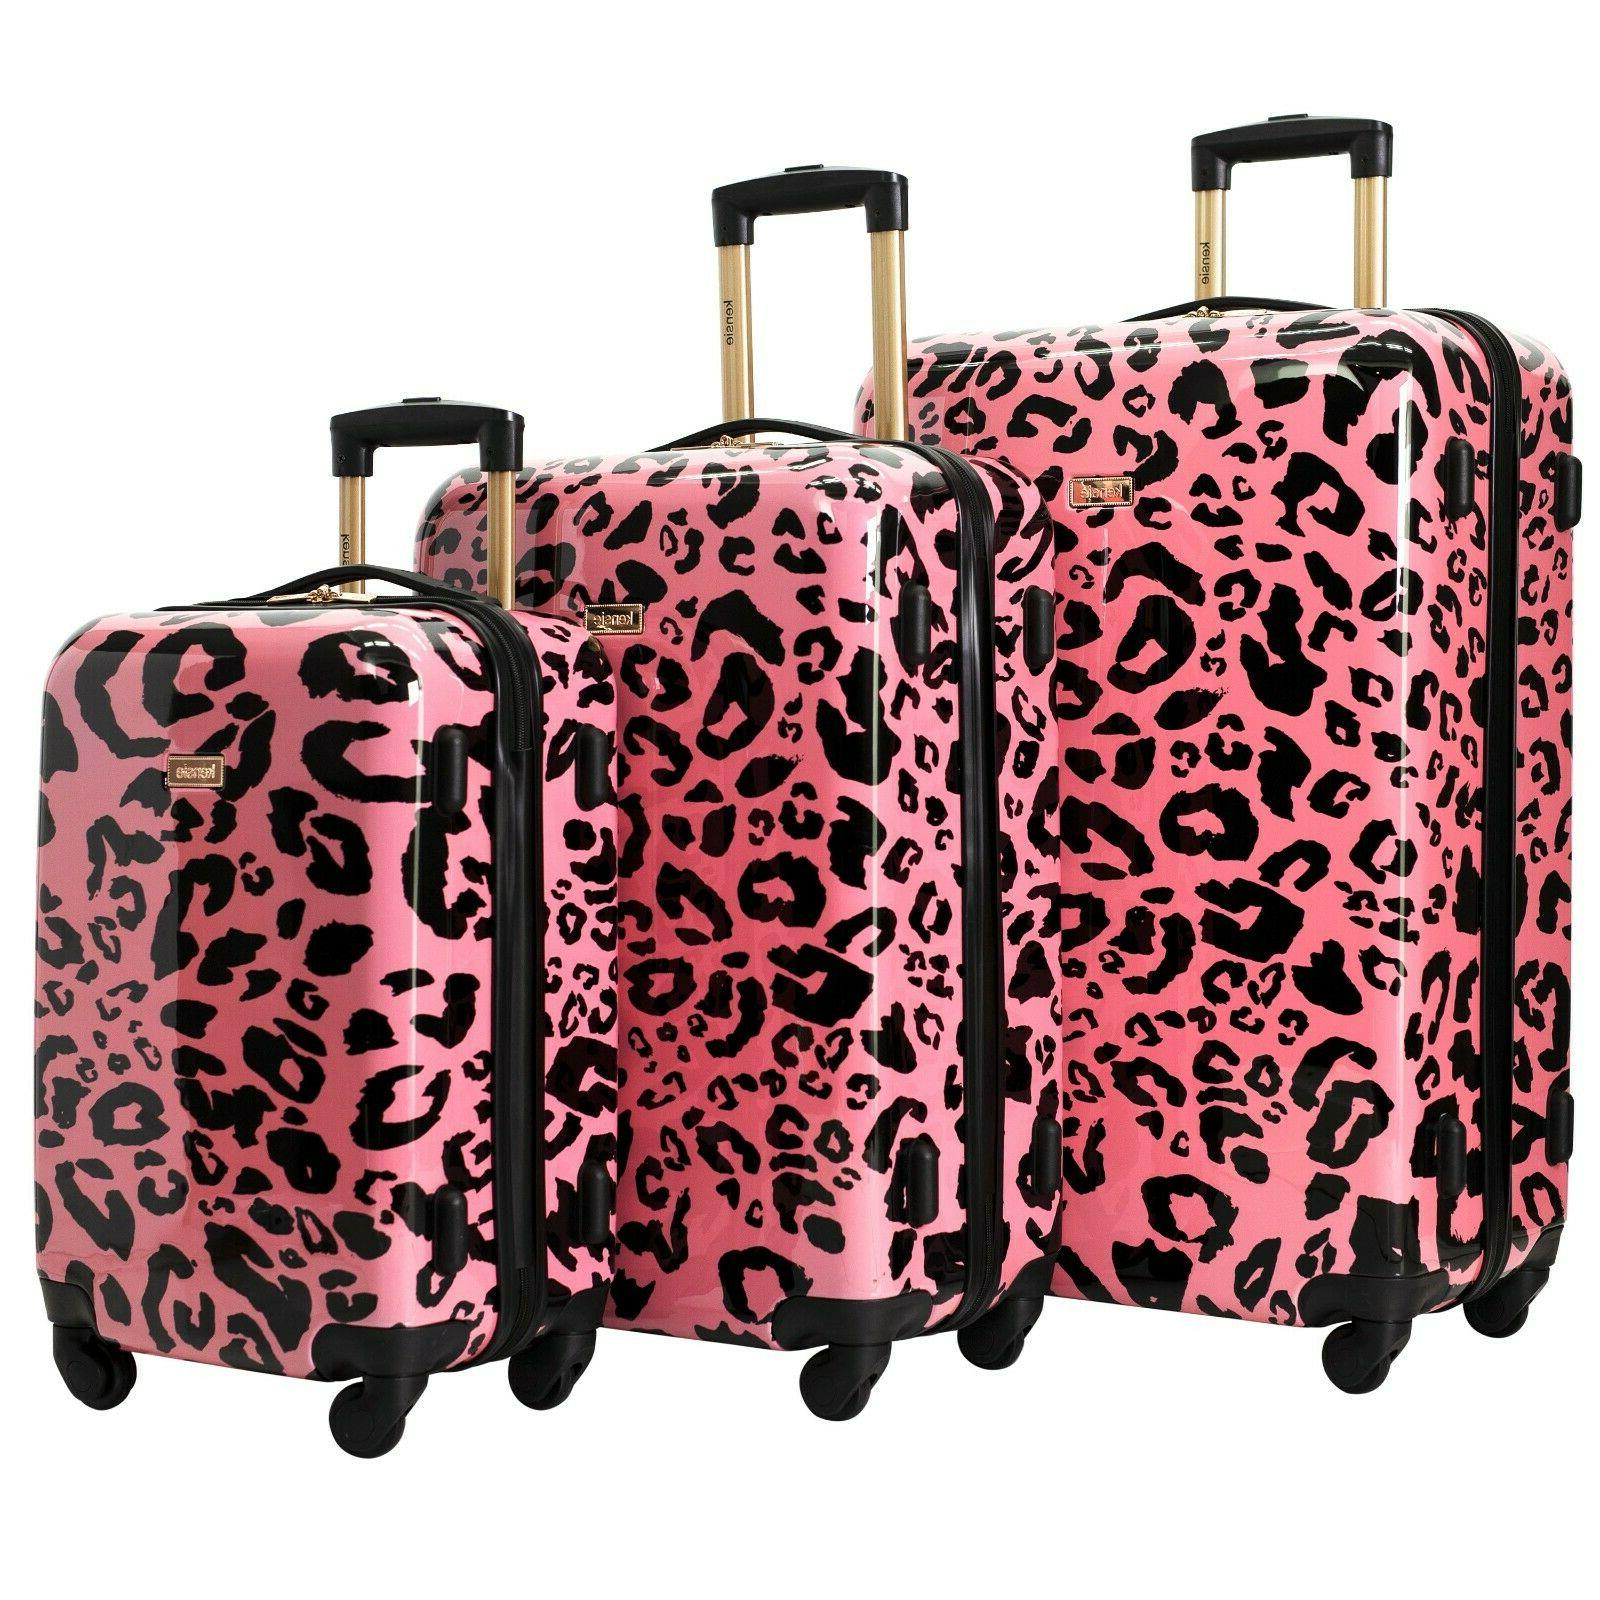 new coral leopard luggage 3 pc set